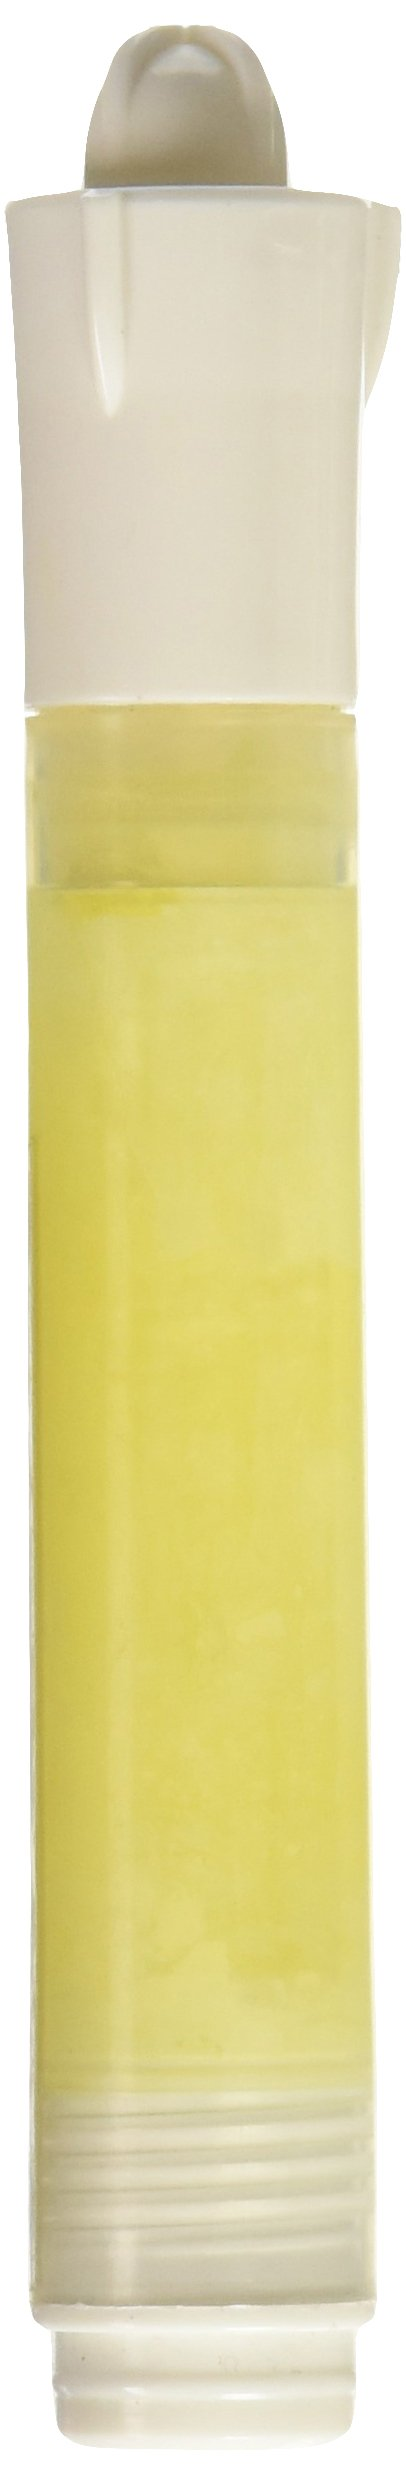 Winco MBM-Y Deluxe Neon Marker, Yellow